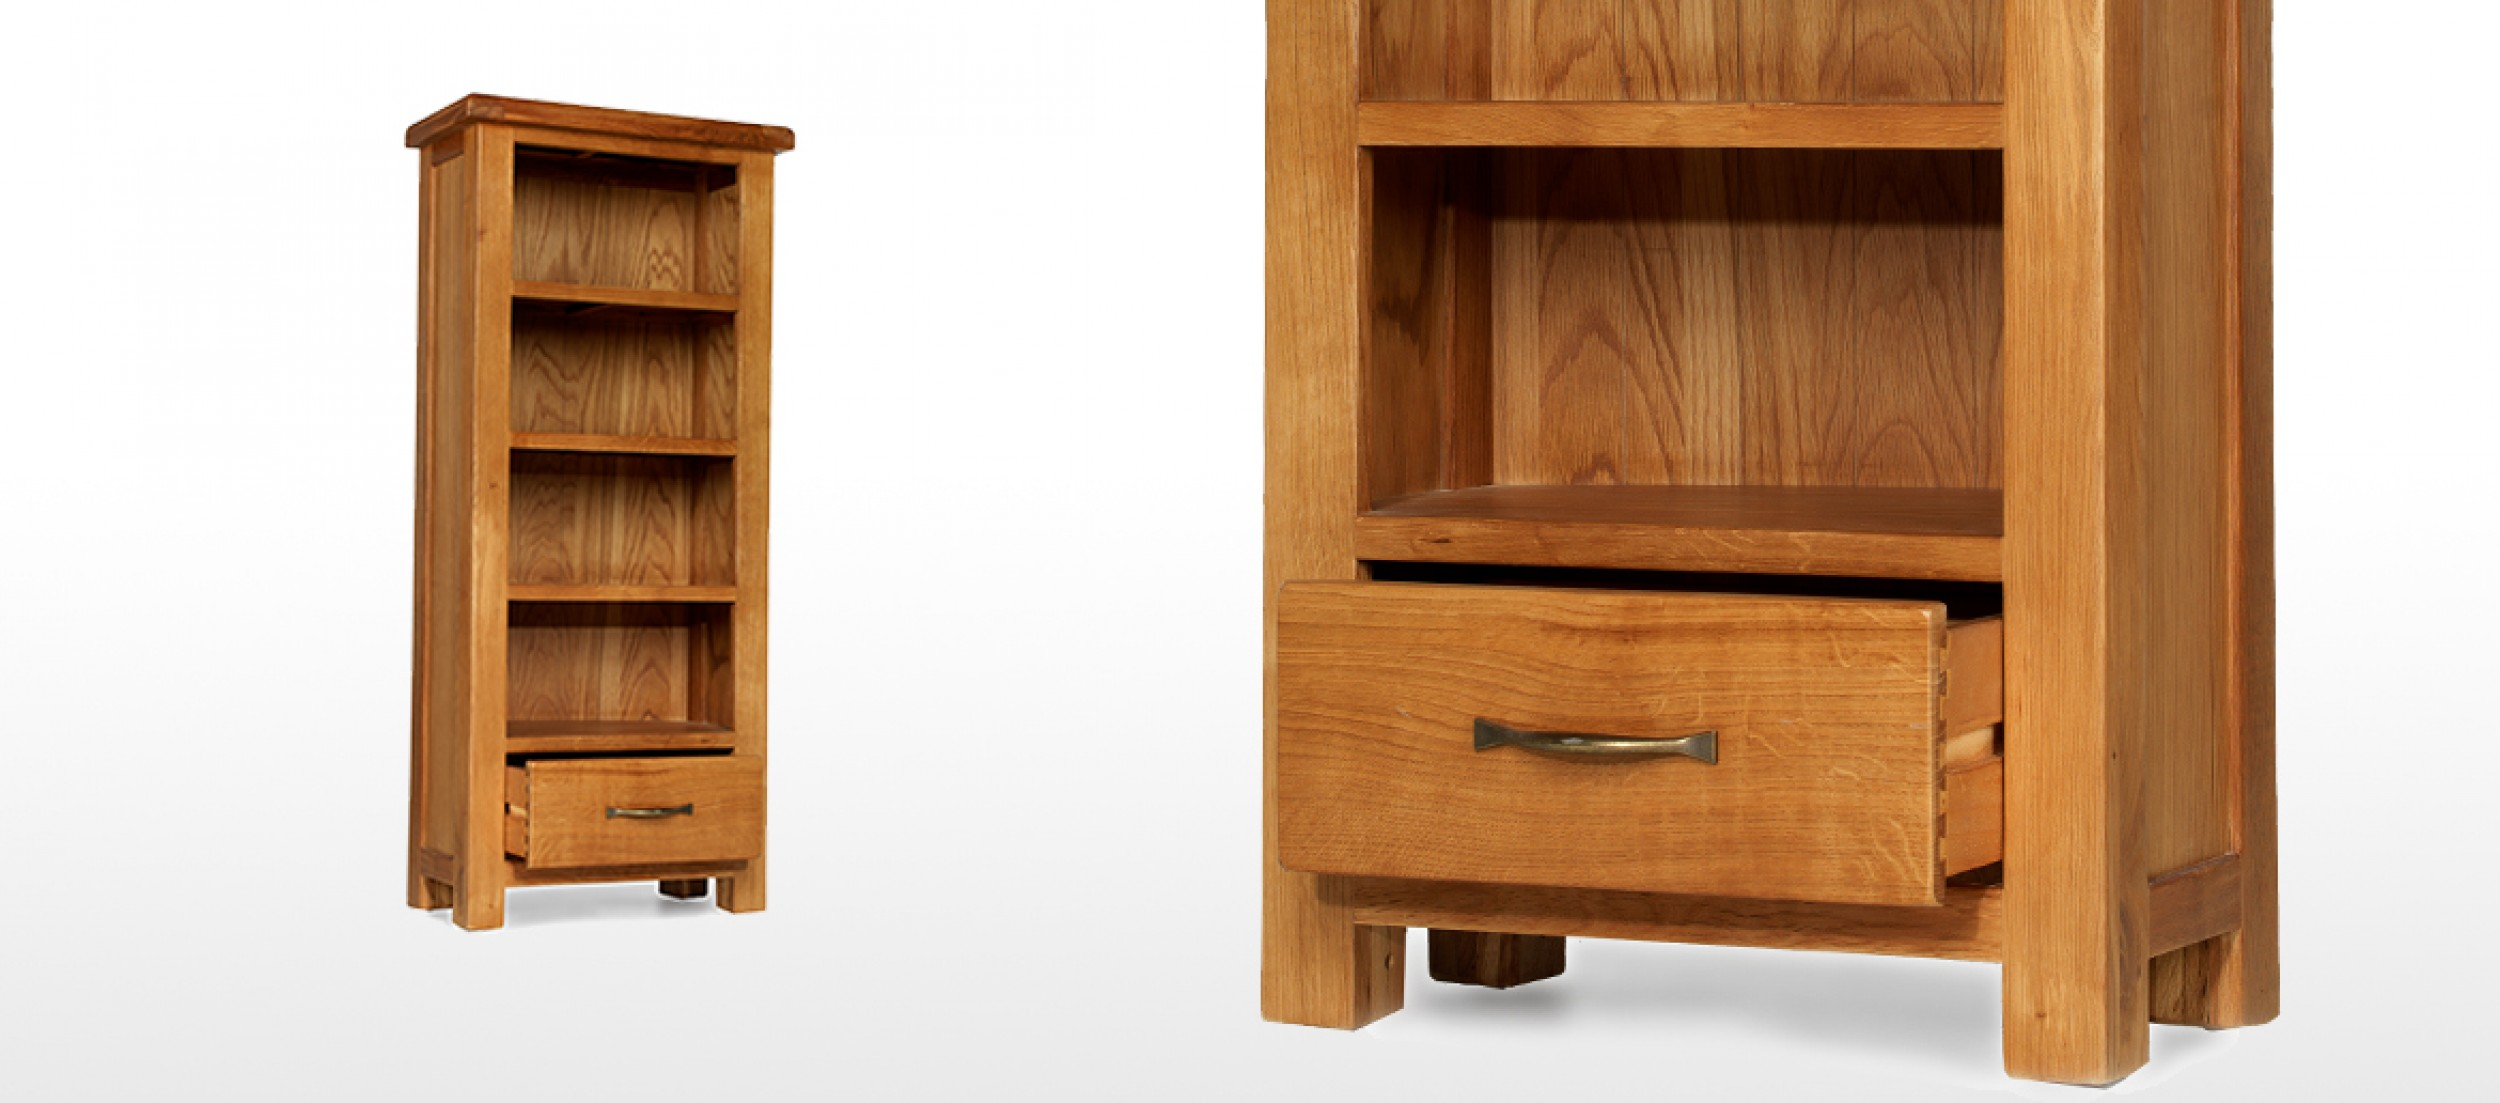 main online oak pdp com johnlewis john henry at bookcases rsp lewis buyjohn drawer with bookcase